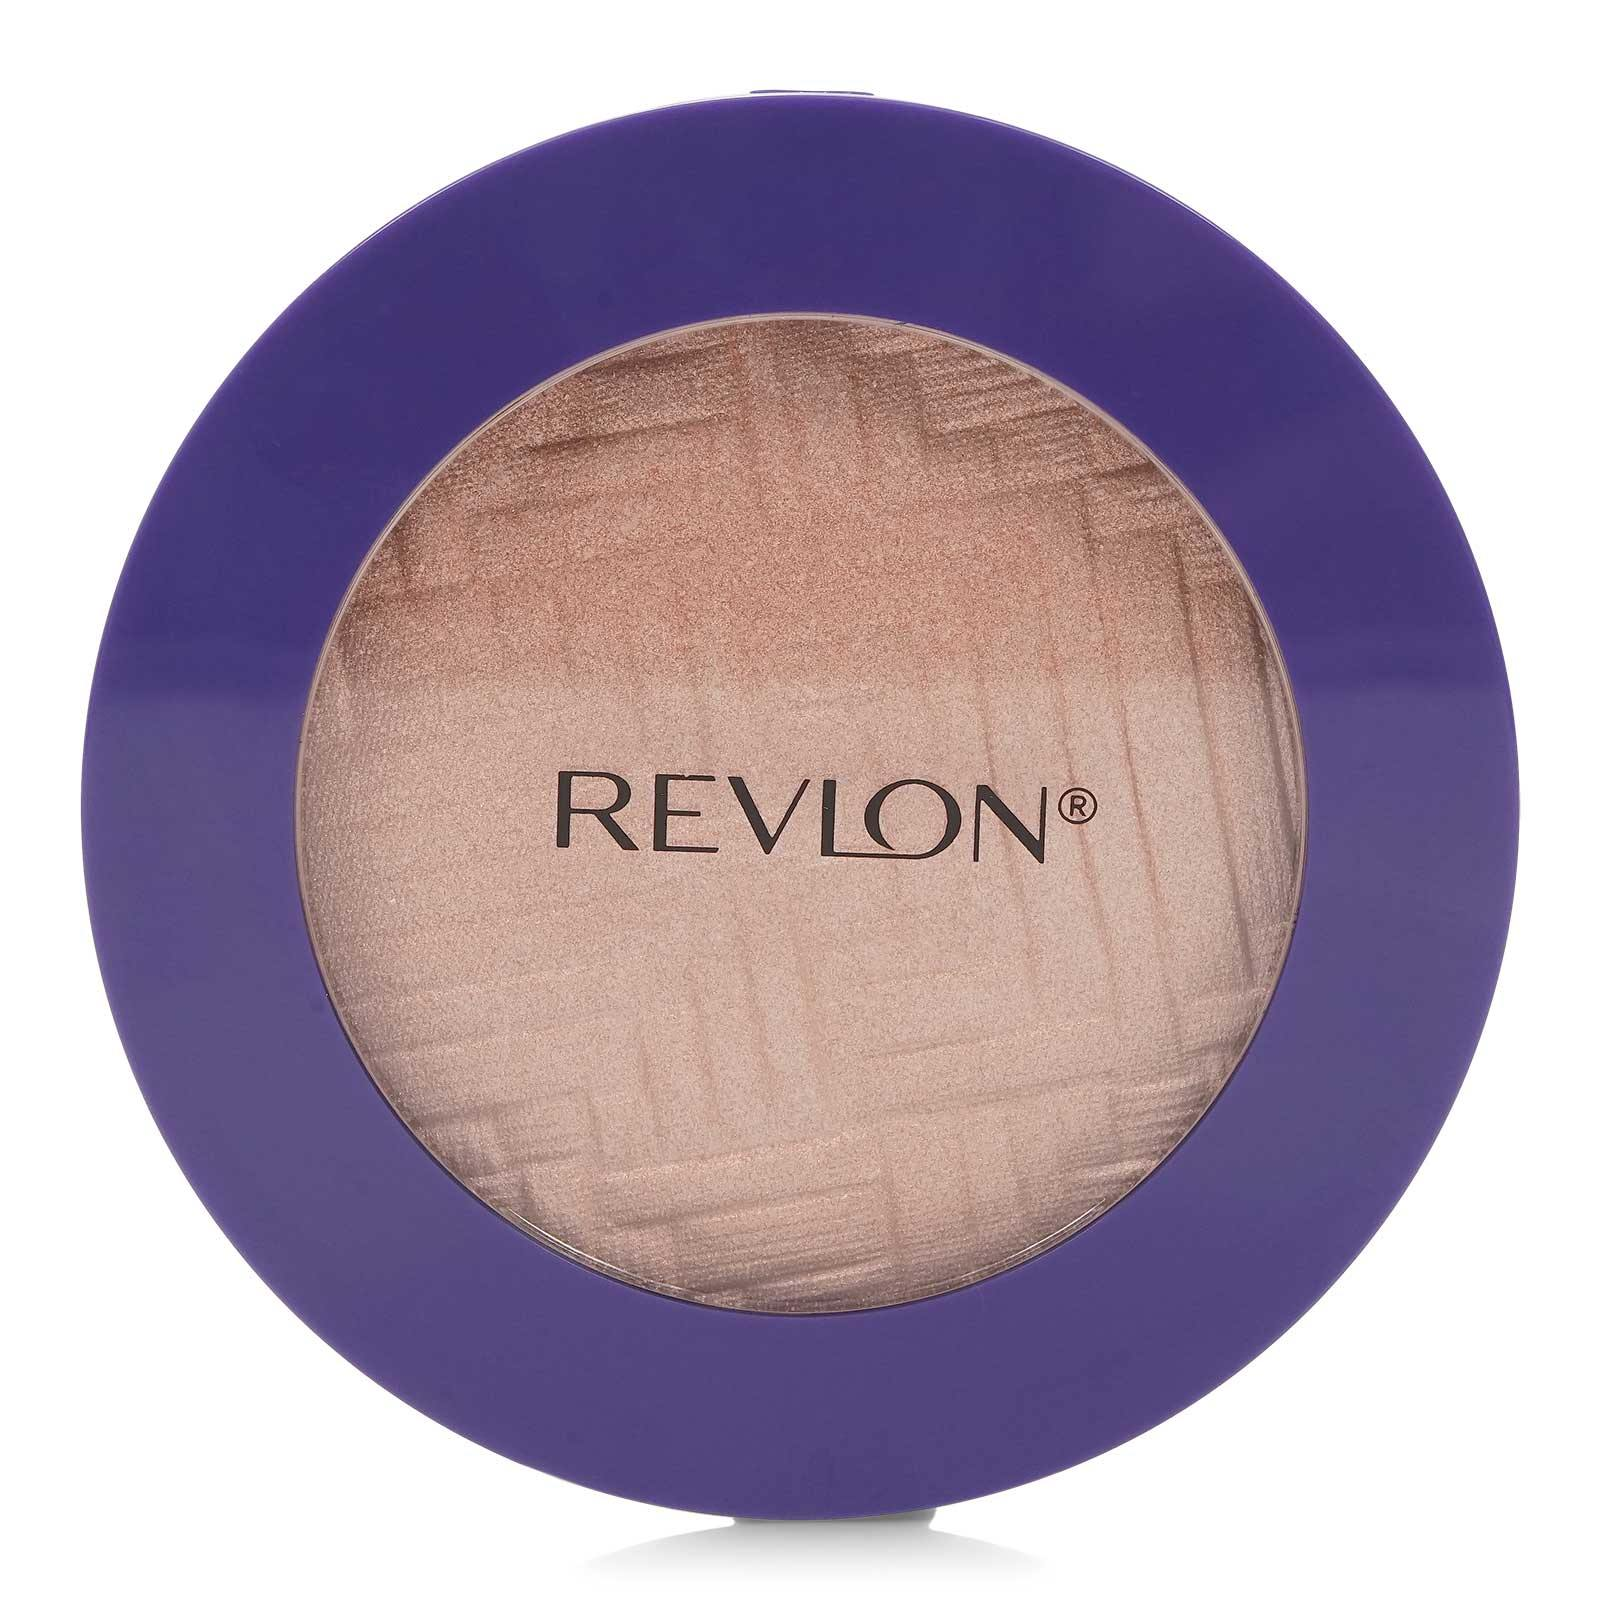 Revlon ELECTRIC SHOCK HIGHLIGHTER - PRISMATIC LIGHT (12/cs)